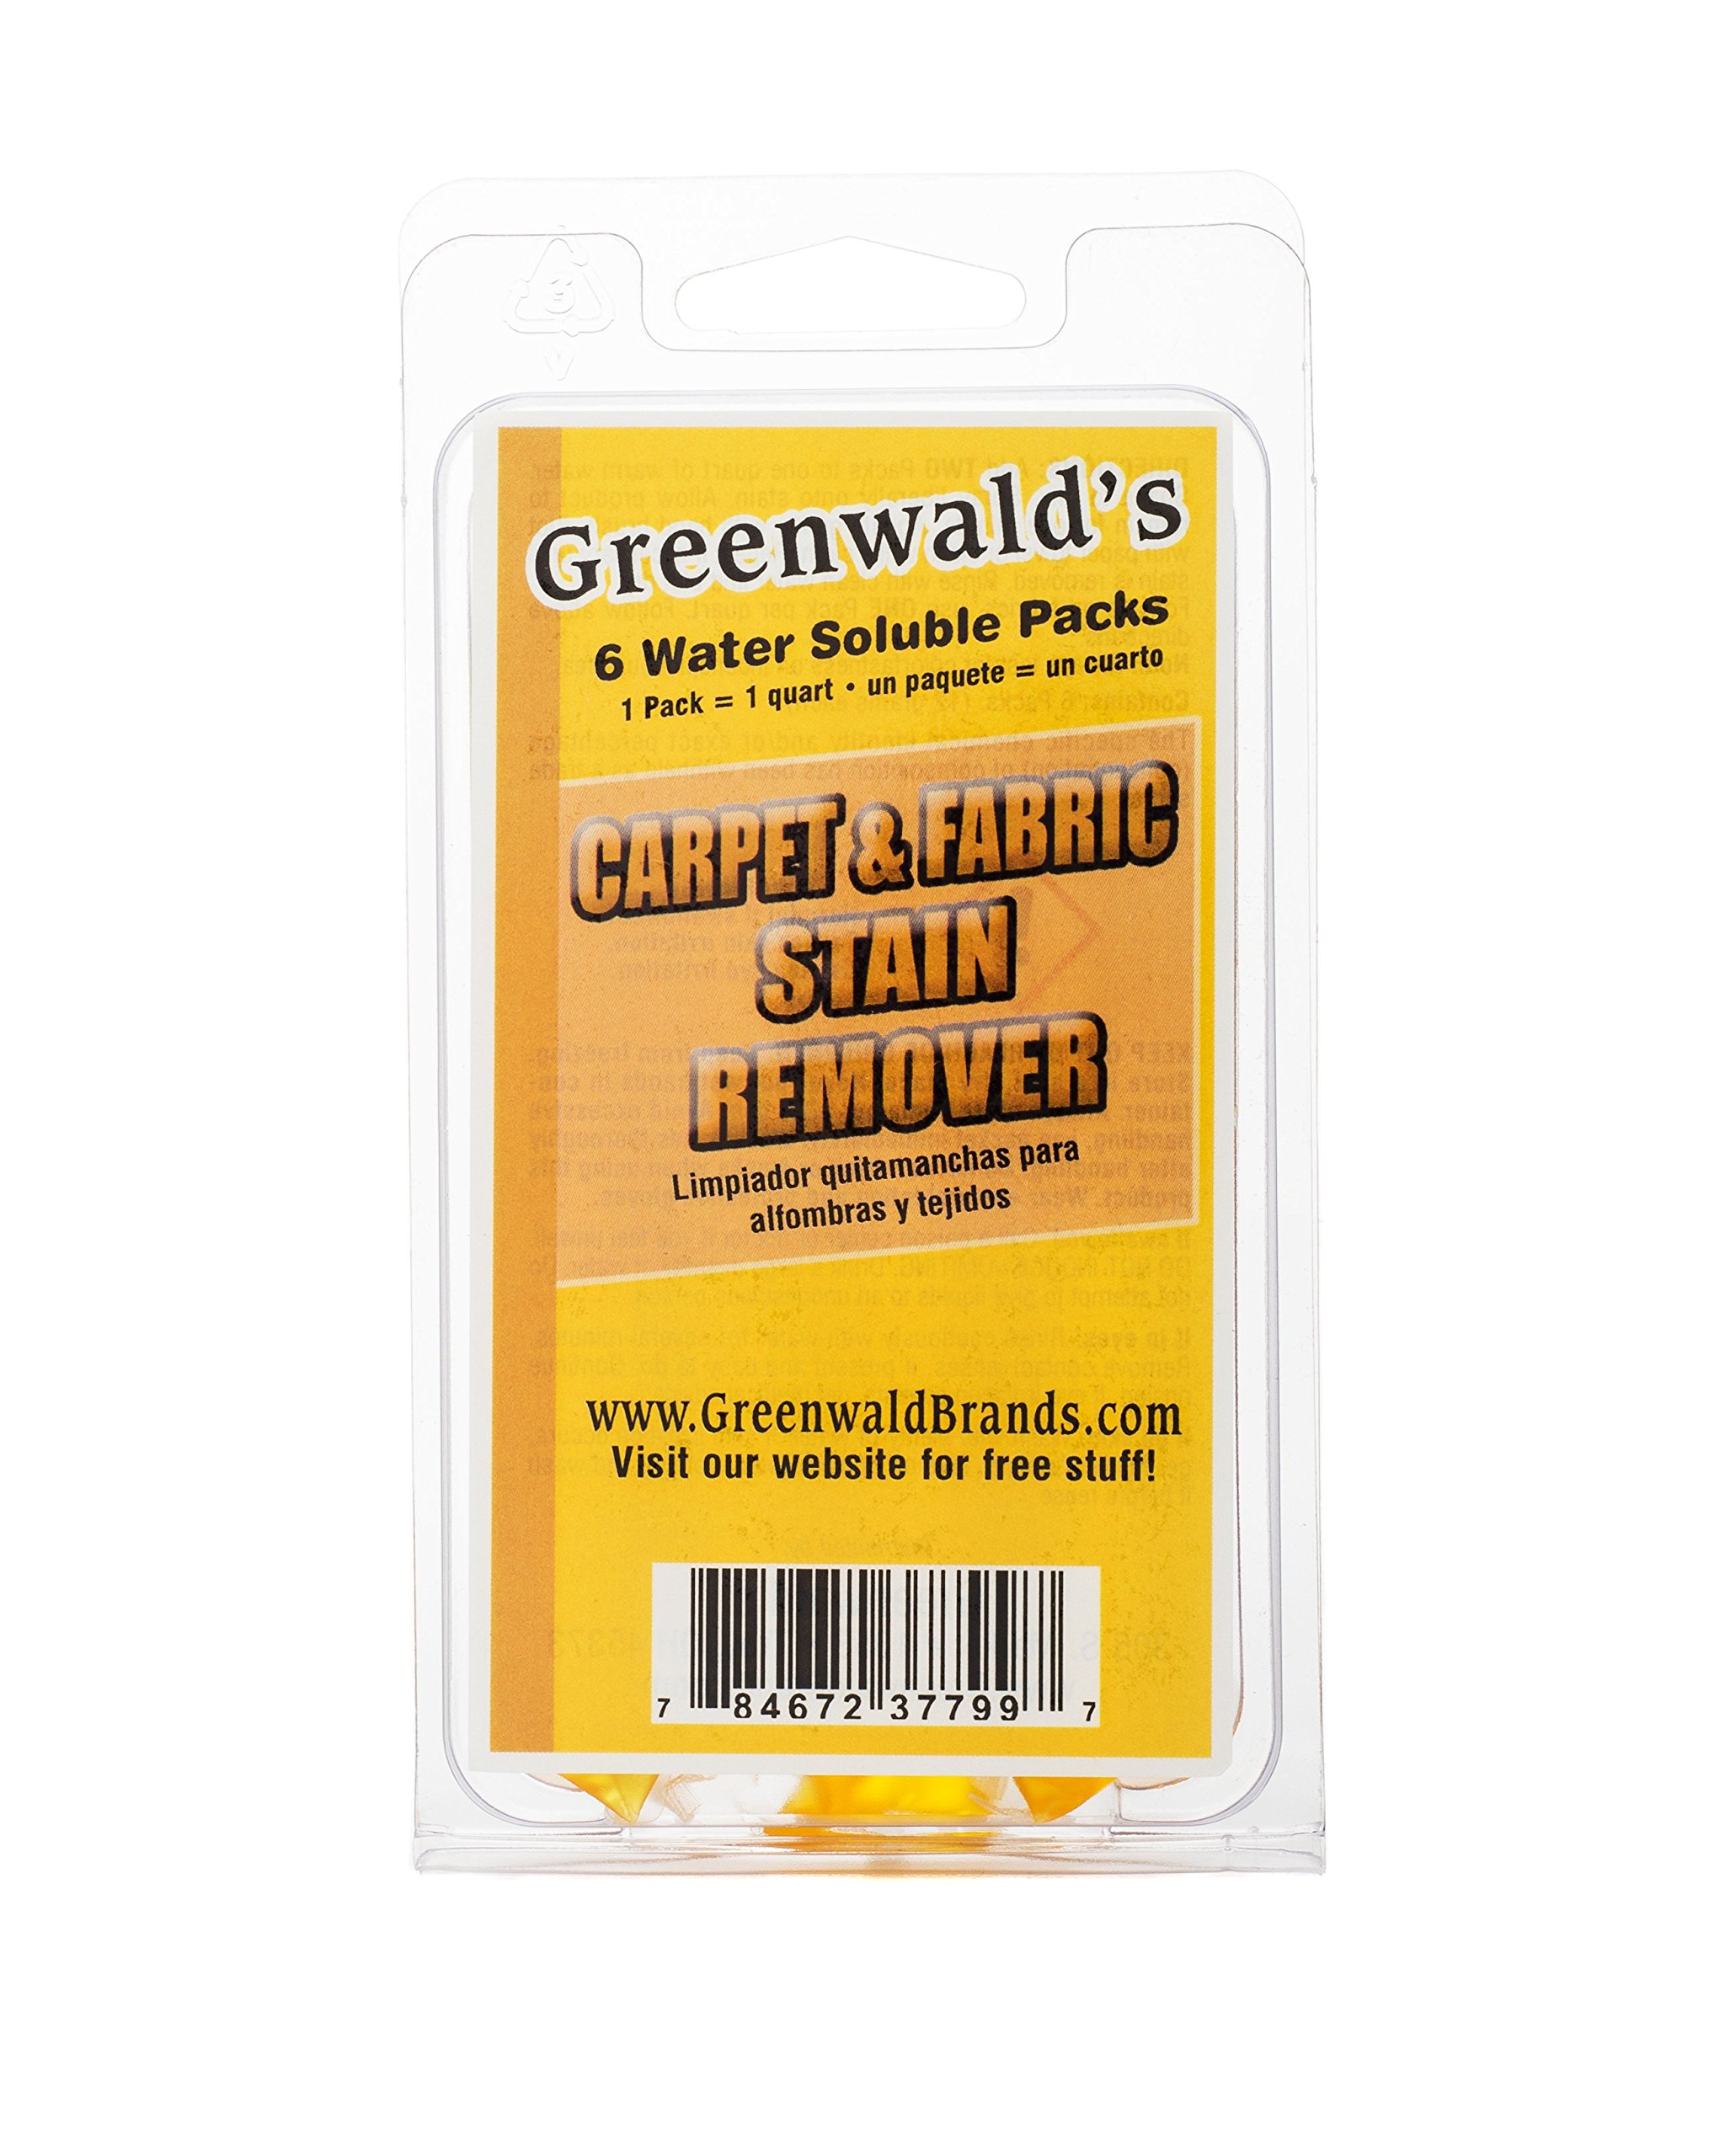 Greenwald's Carpet, Upholstery & Fabric Stain Remover - Easy Refills Make 6 32-oz Spray Bottles - 100% Satisfaction Guarantee